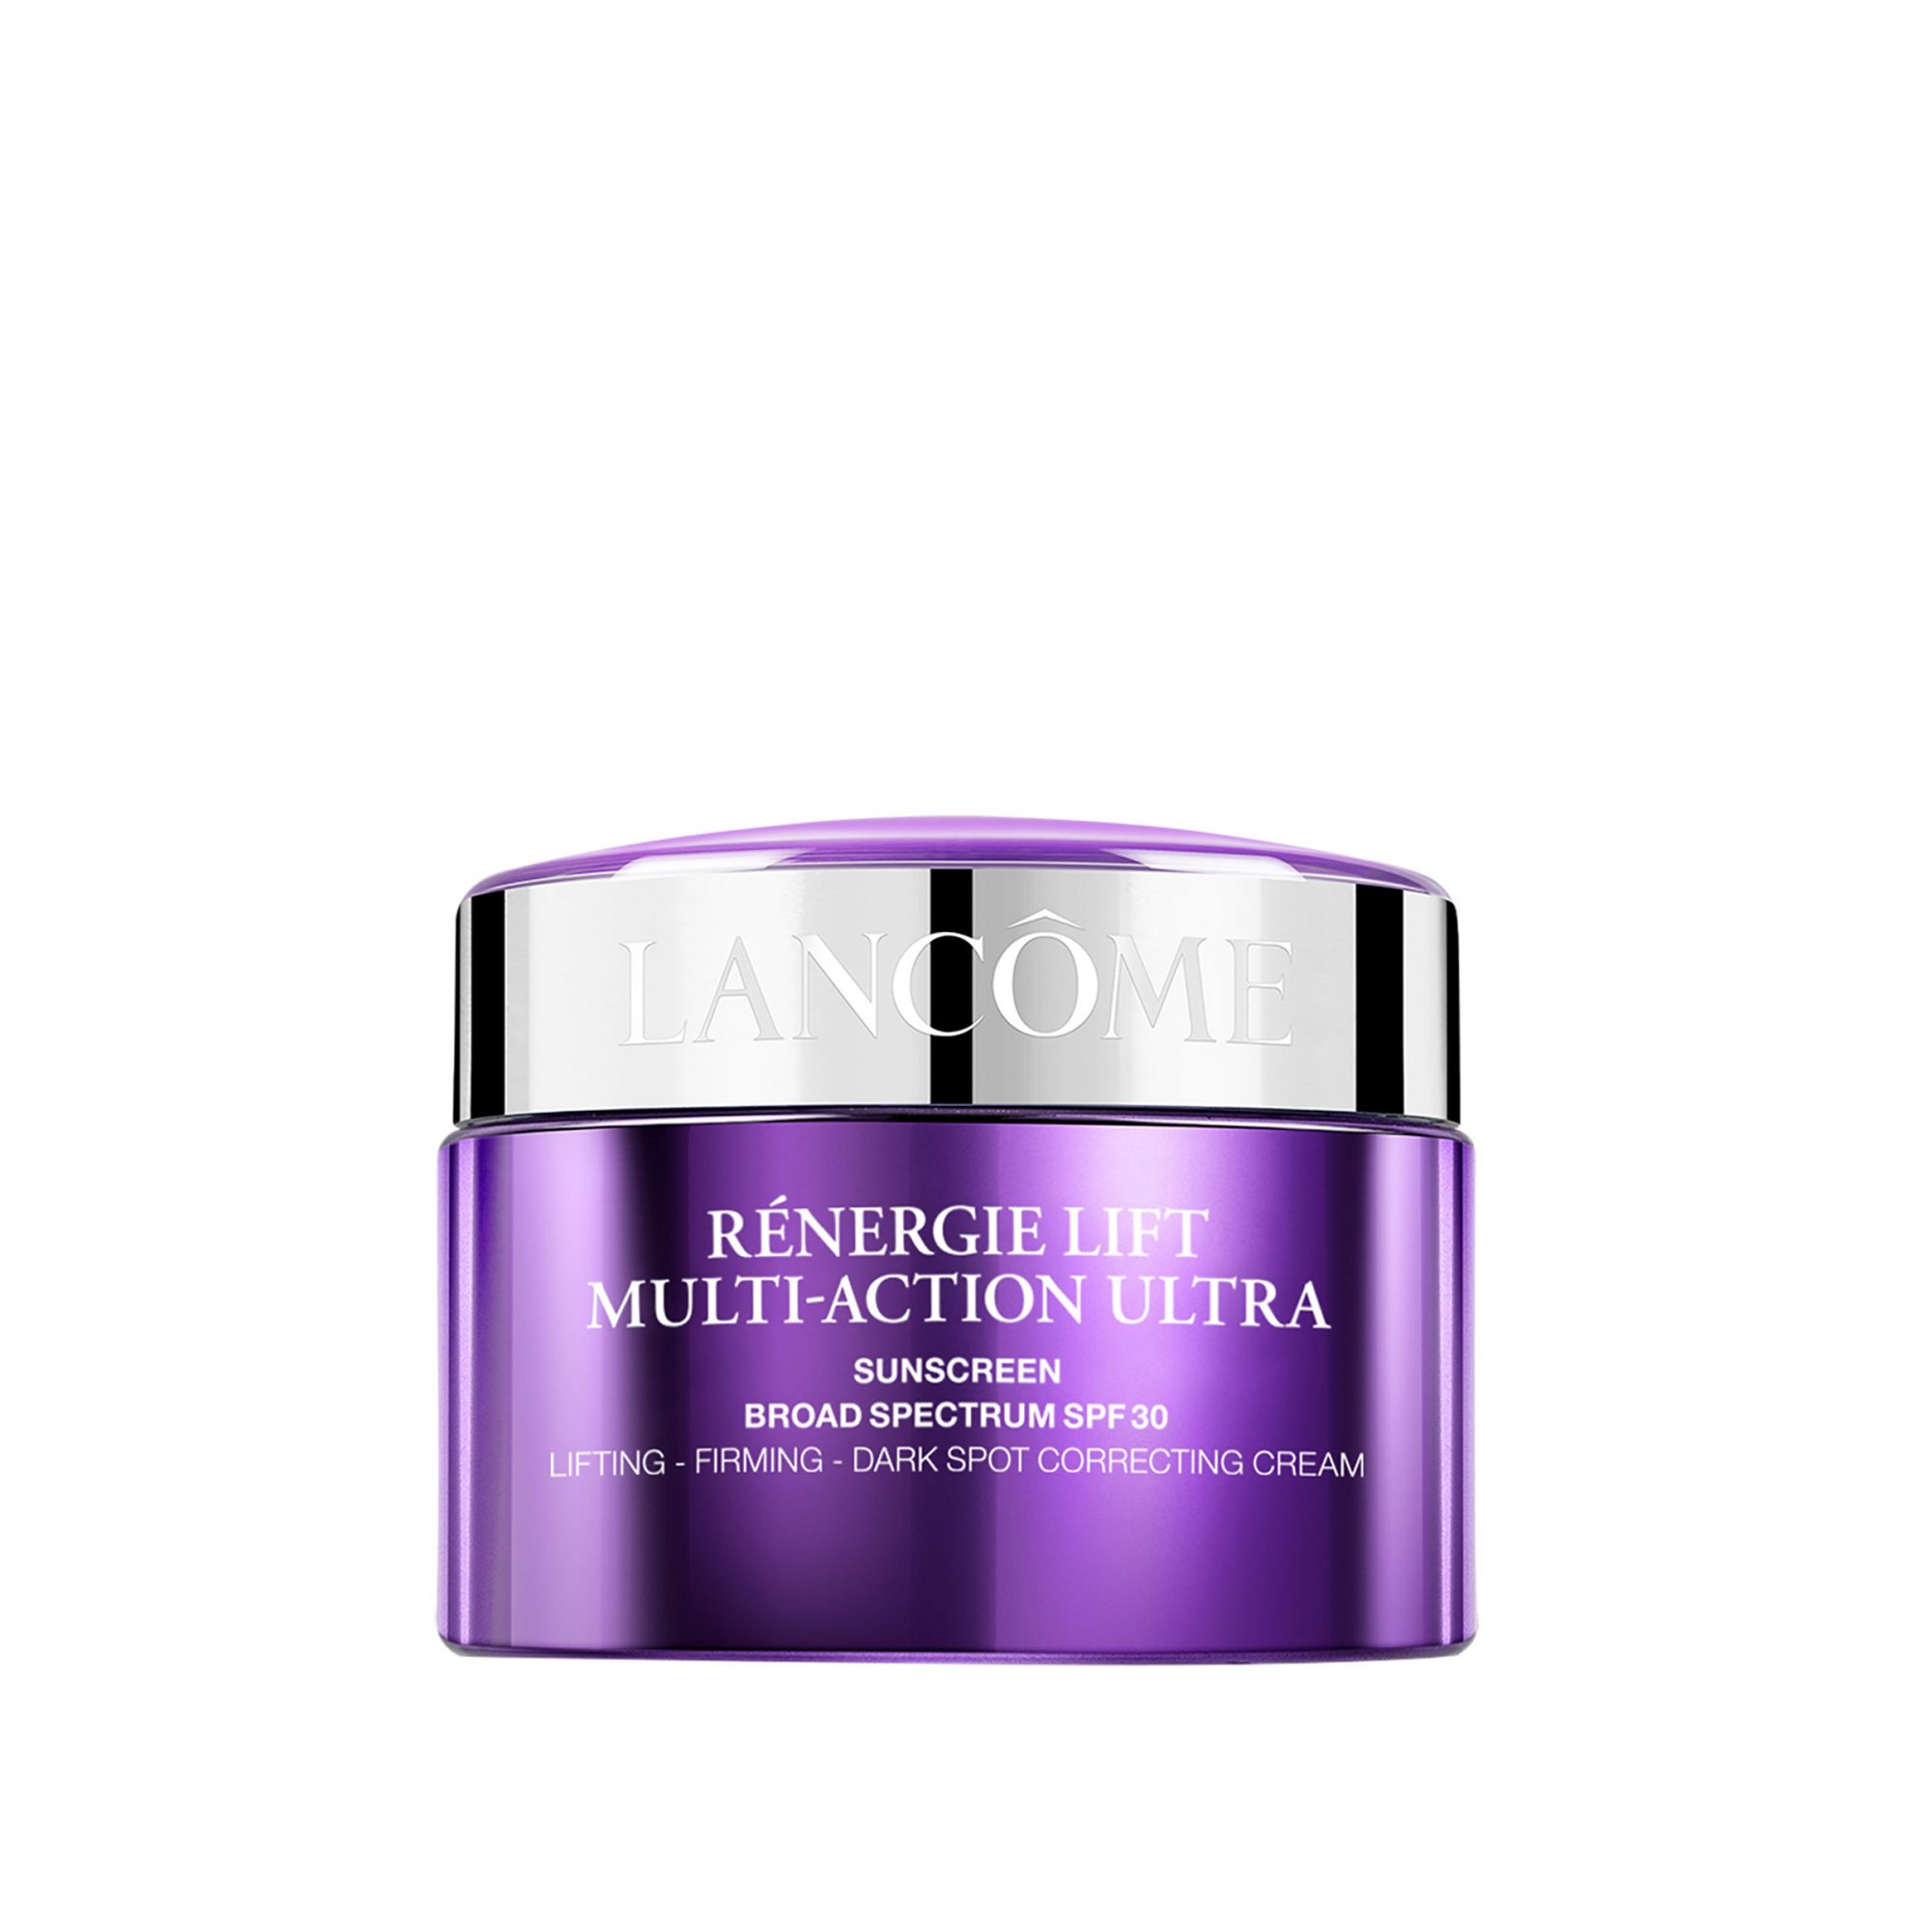 Lancome Renergie Lift Multi Action Ultra Cream